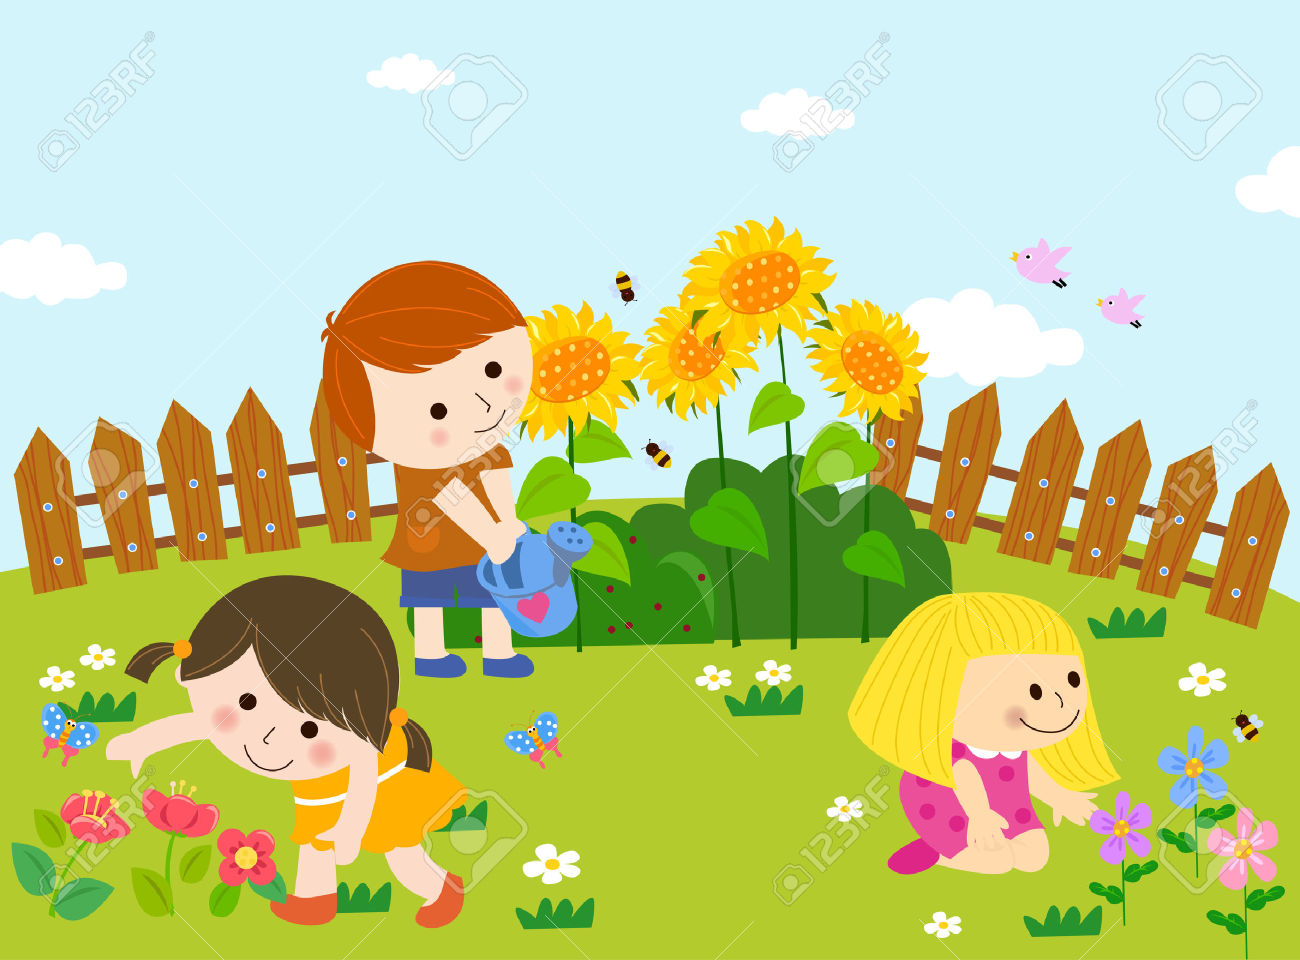 Garten gieen clipart clip royalty free Cute Kids Playing In Garden Royalty Free Cliparts, Vectors, And ... clip royalty free